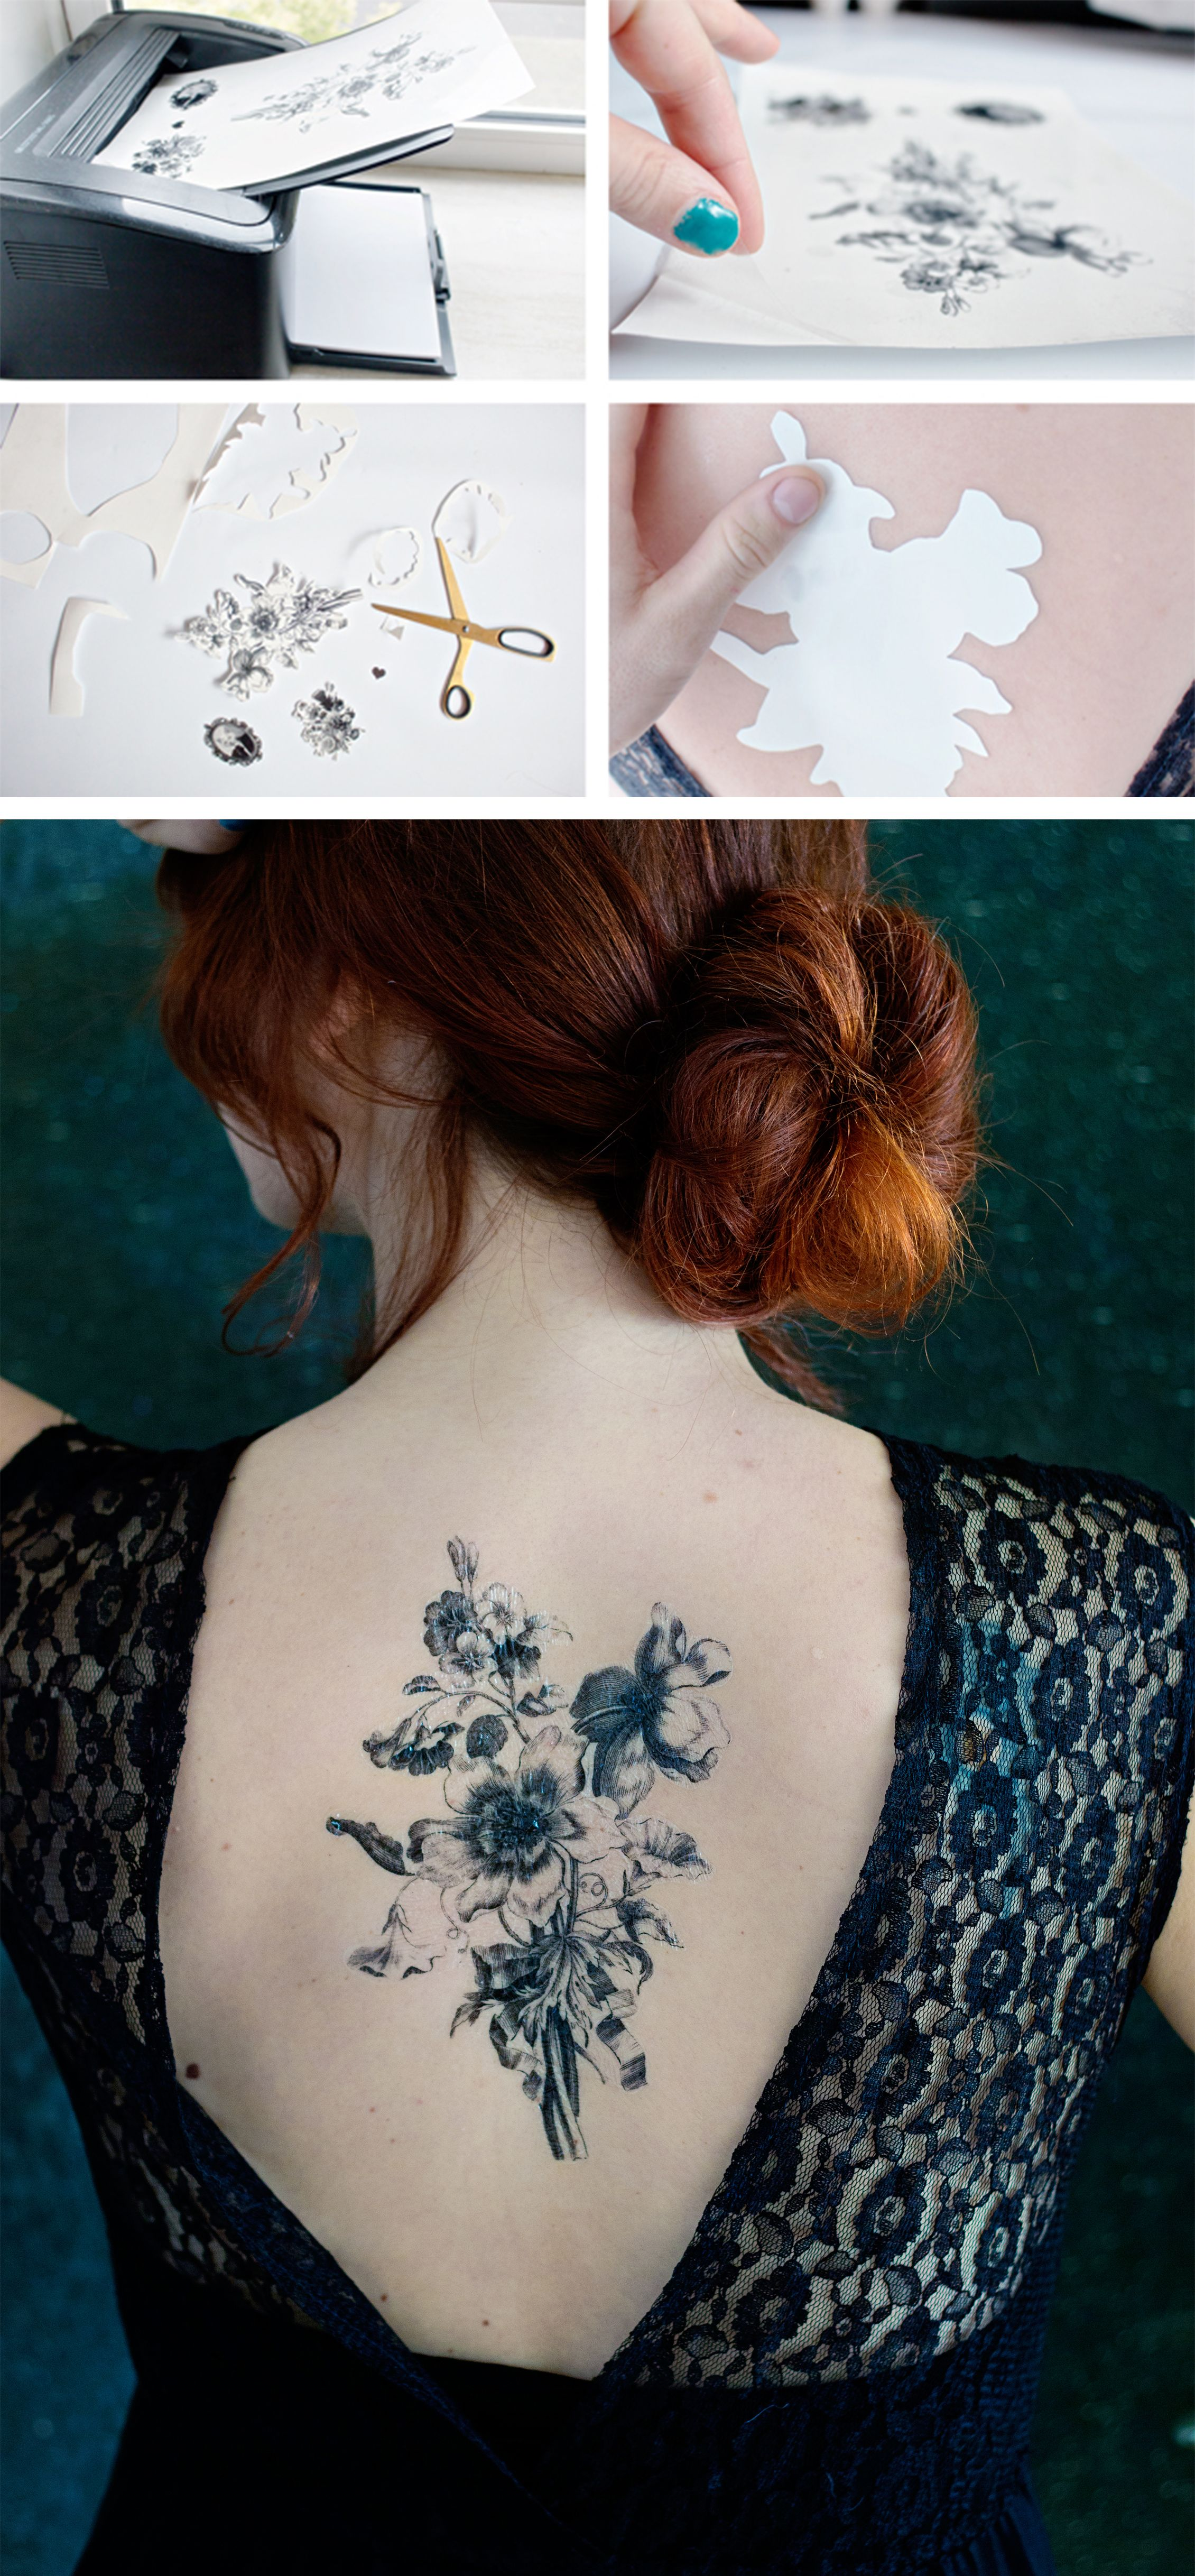 Did you know that you can make your own temporary tattoos diy by